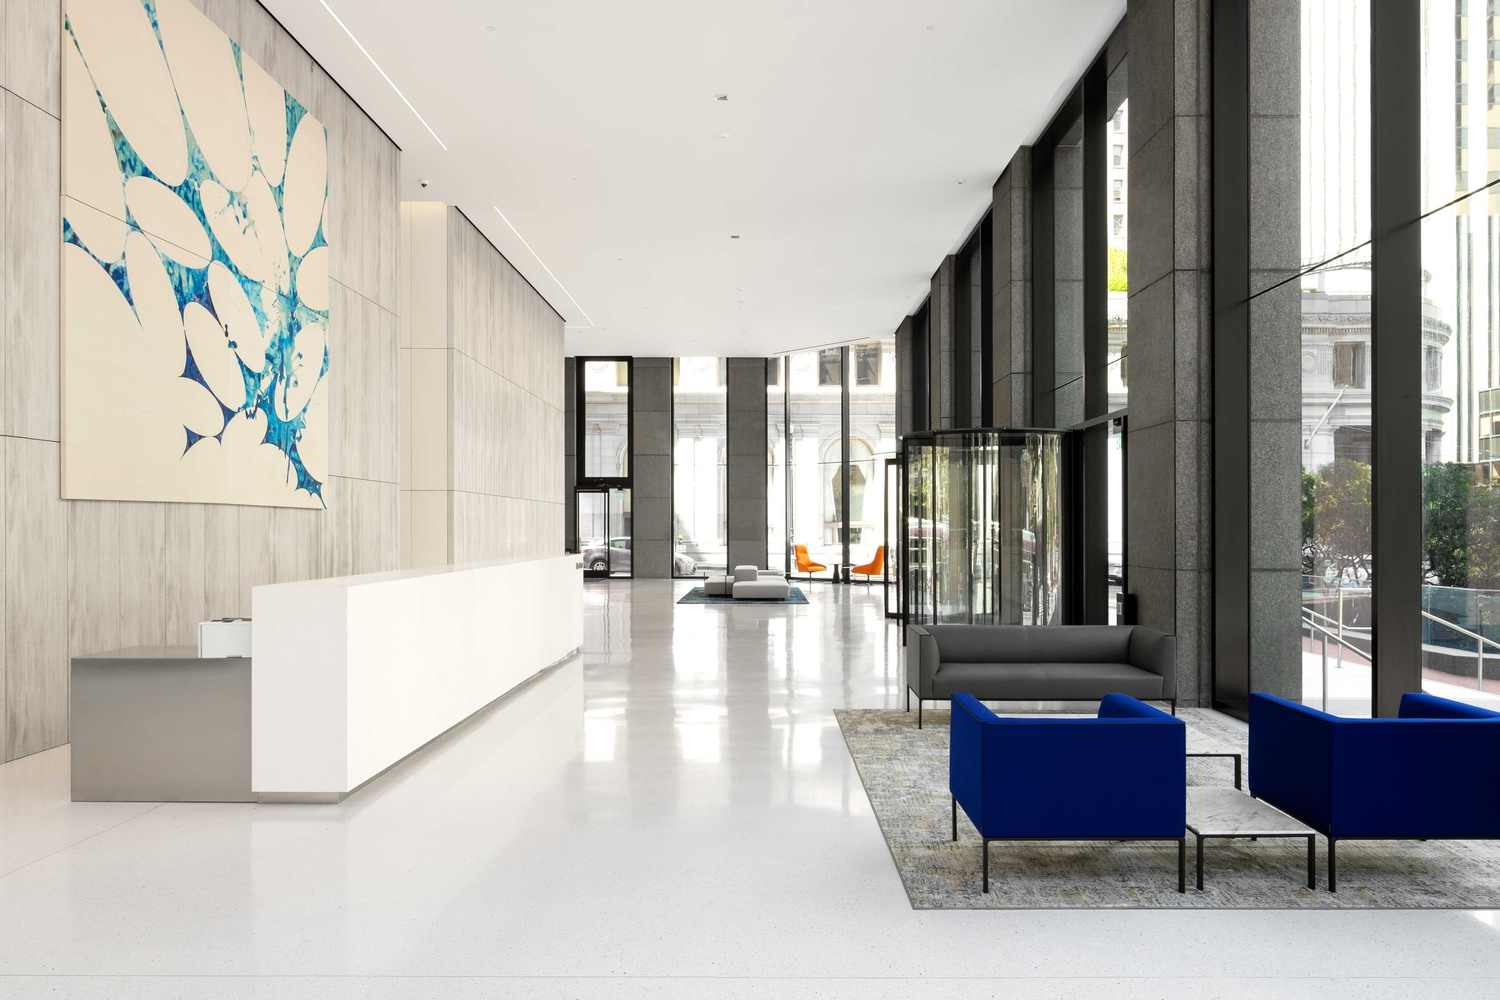 The inside of an office building at the lobby with chairs and a reception desk with art on the wall behind it.